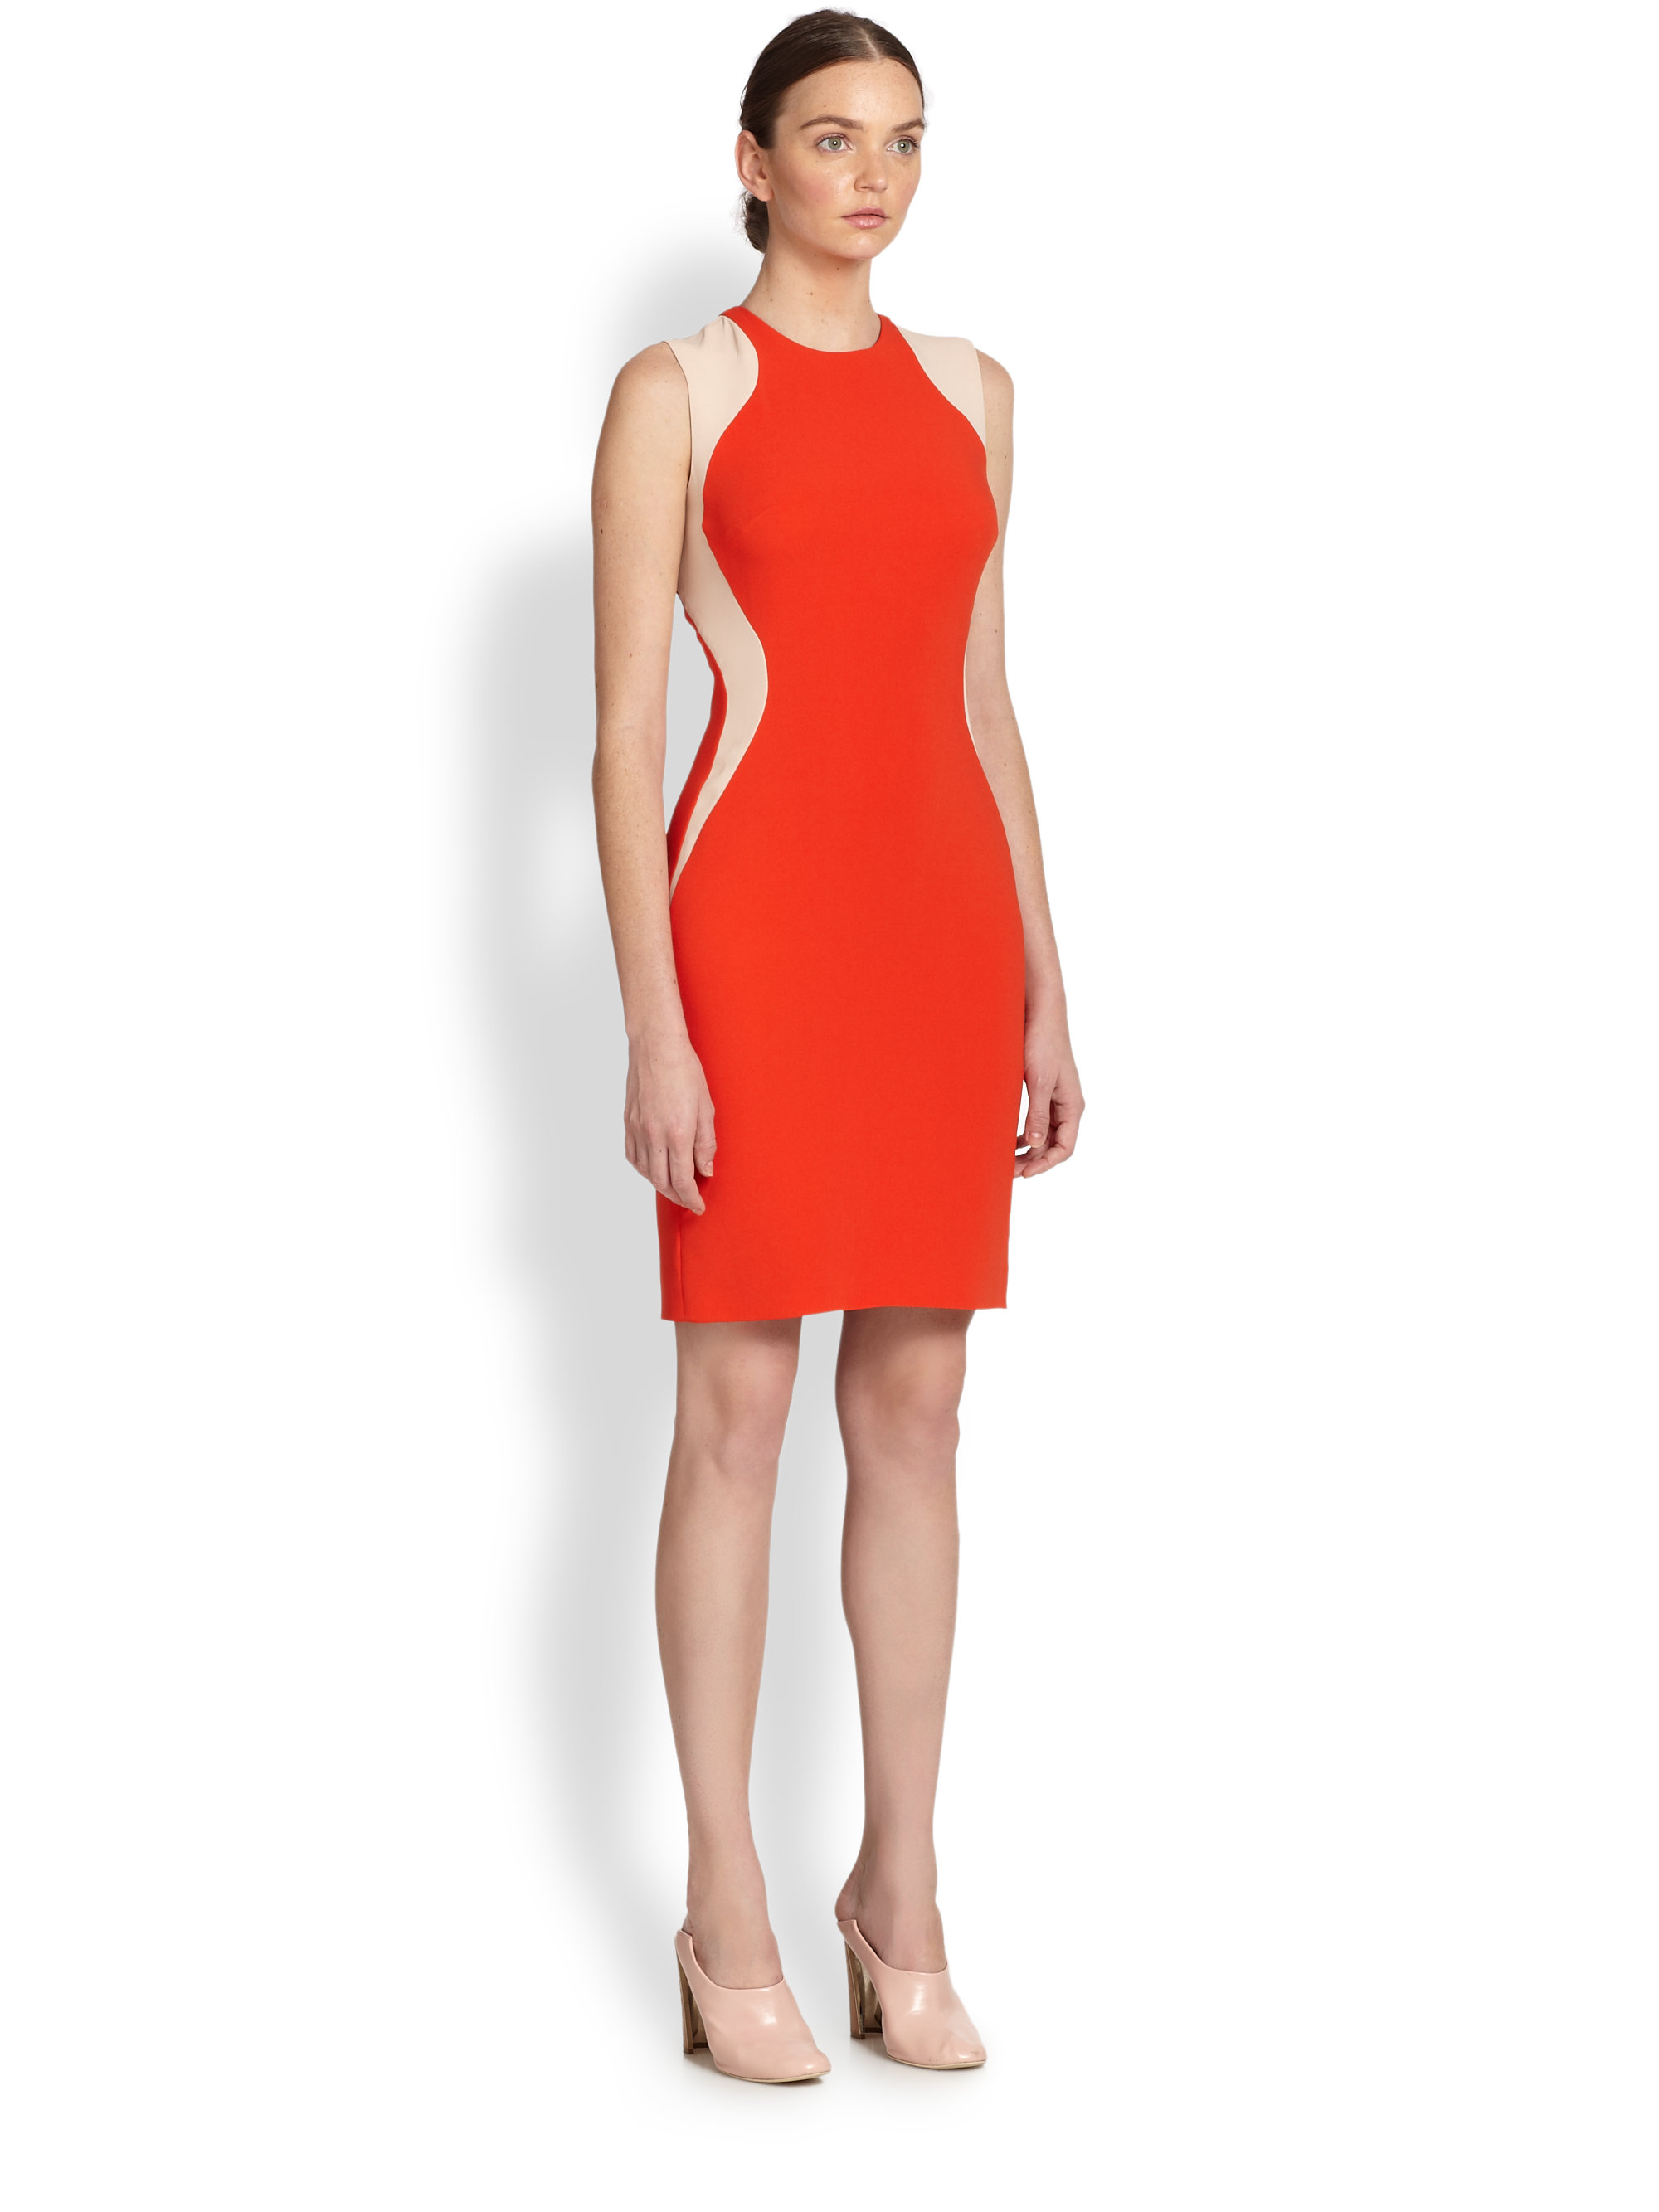 Stella McCartney Orange Dress